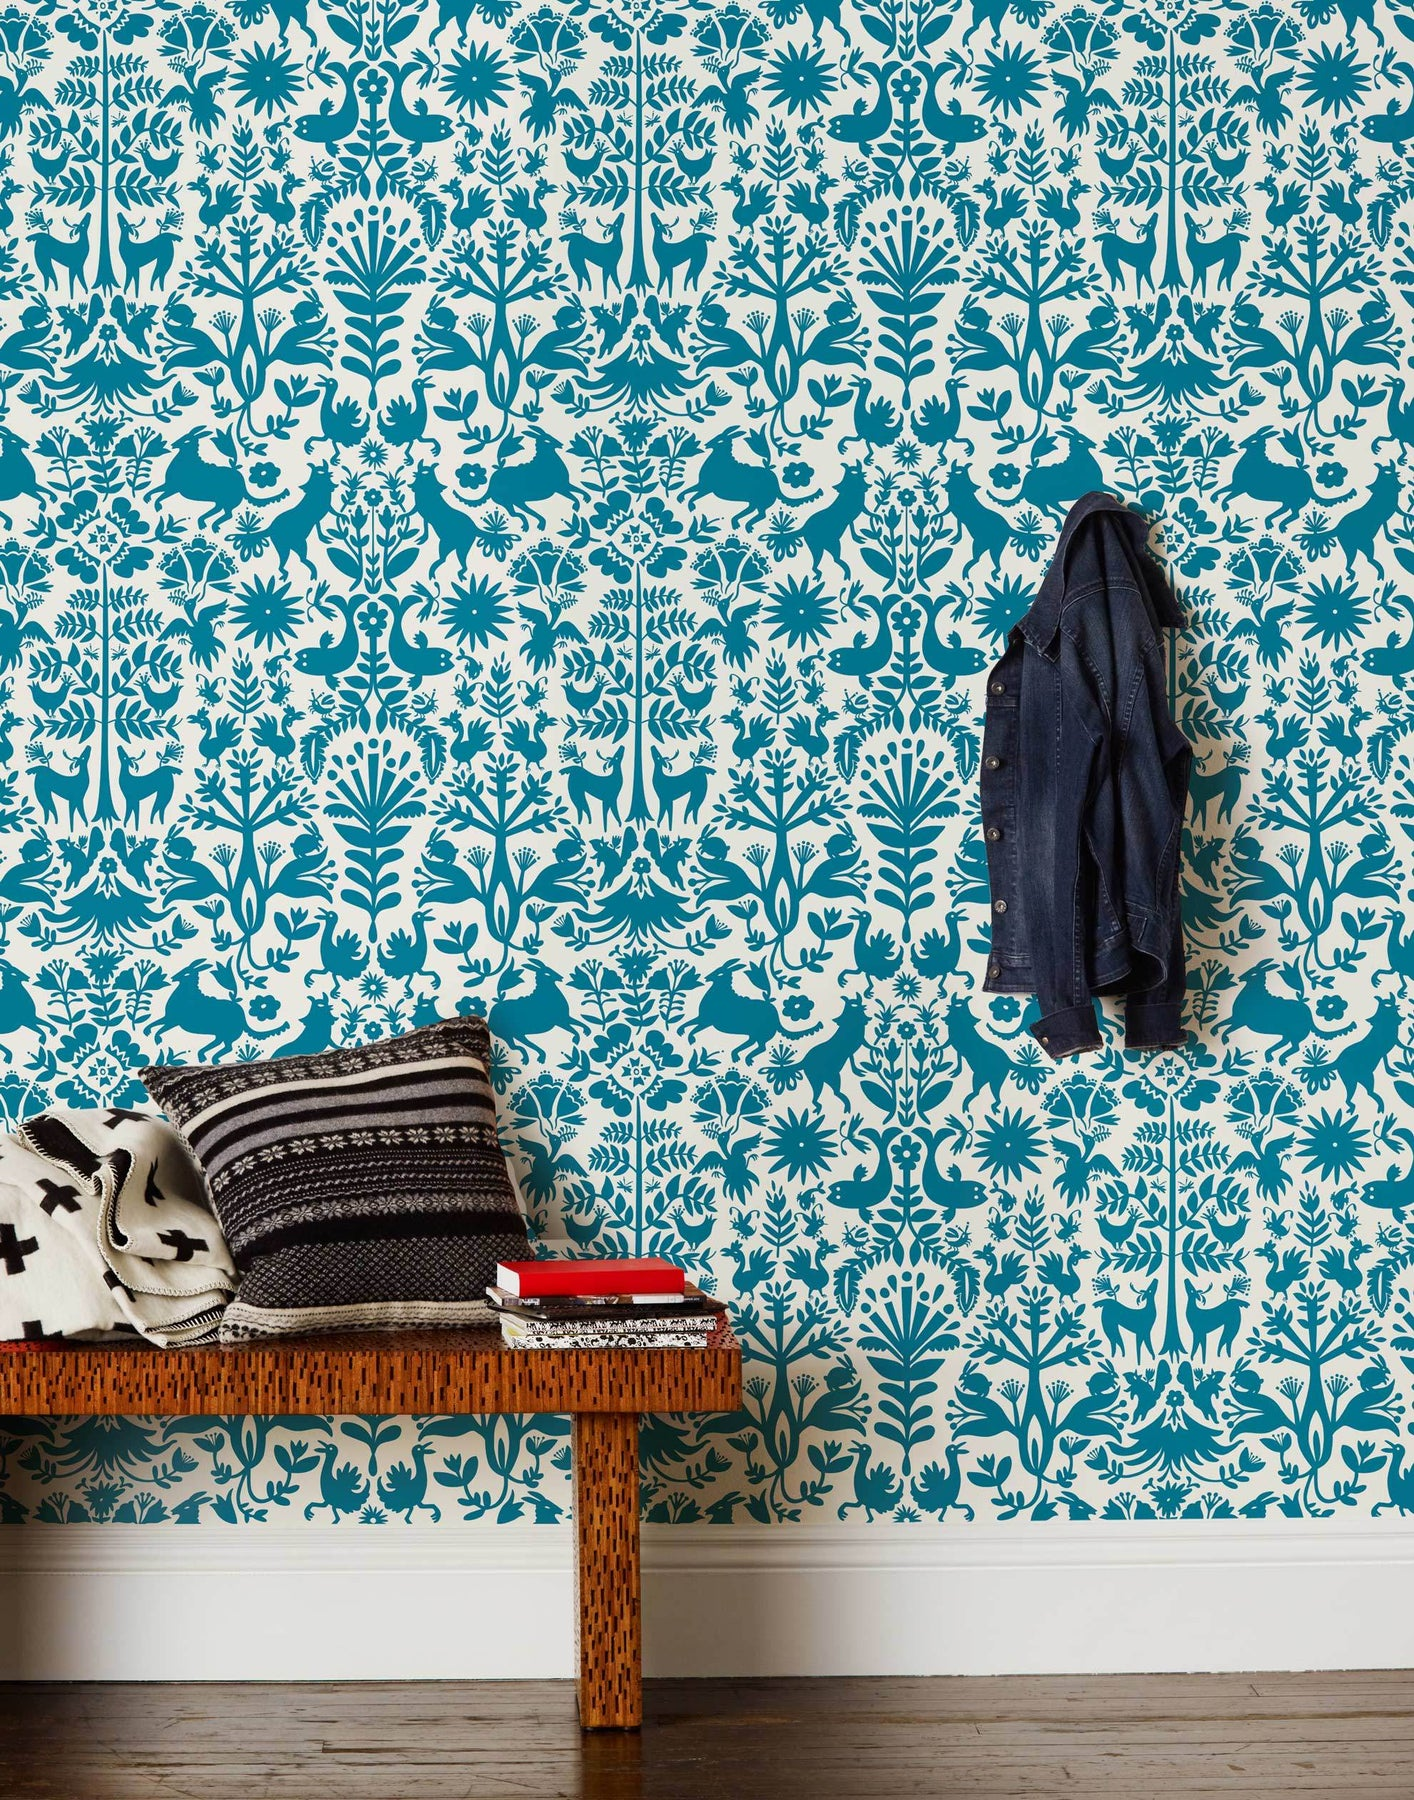 Otomi (Turquoise) wallpaper featuring a blue green Otomi meets Scandinavian folk pattern on a white background | Hygge & West x Emily Isabella